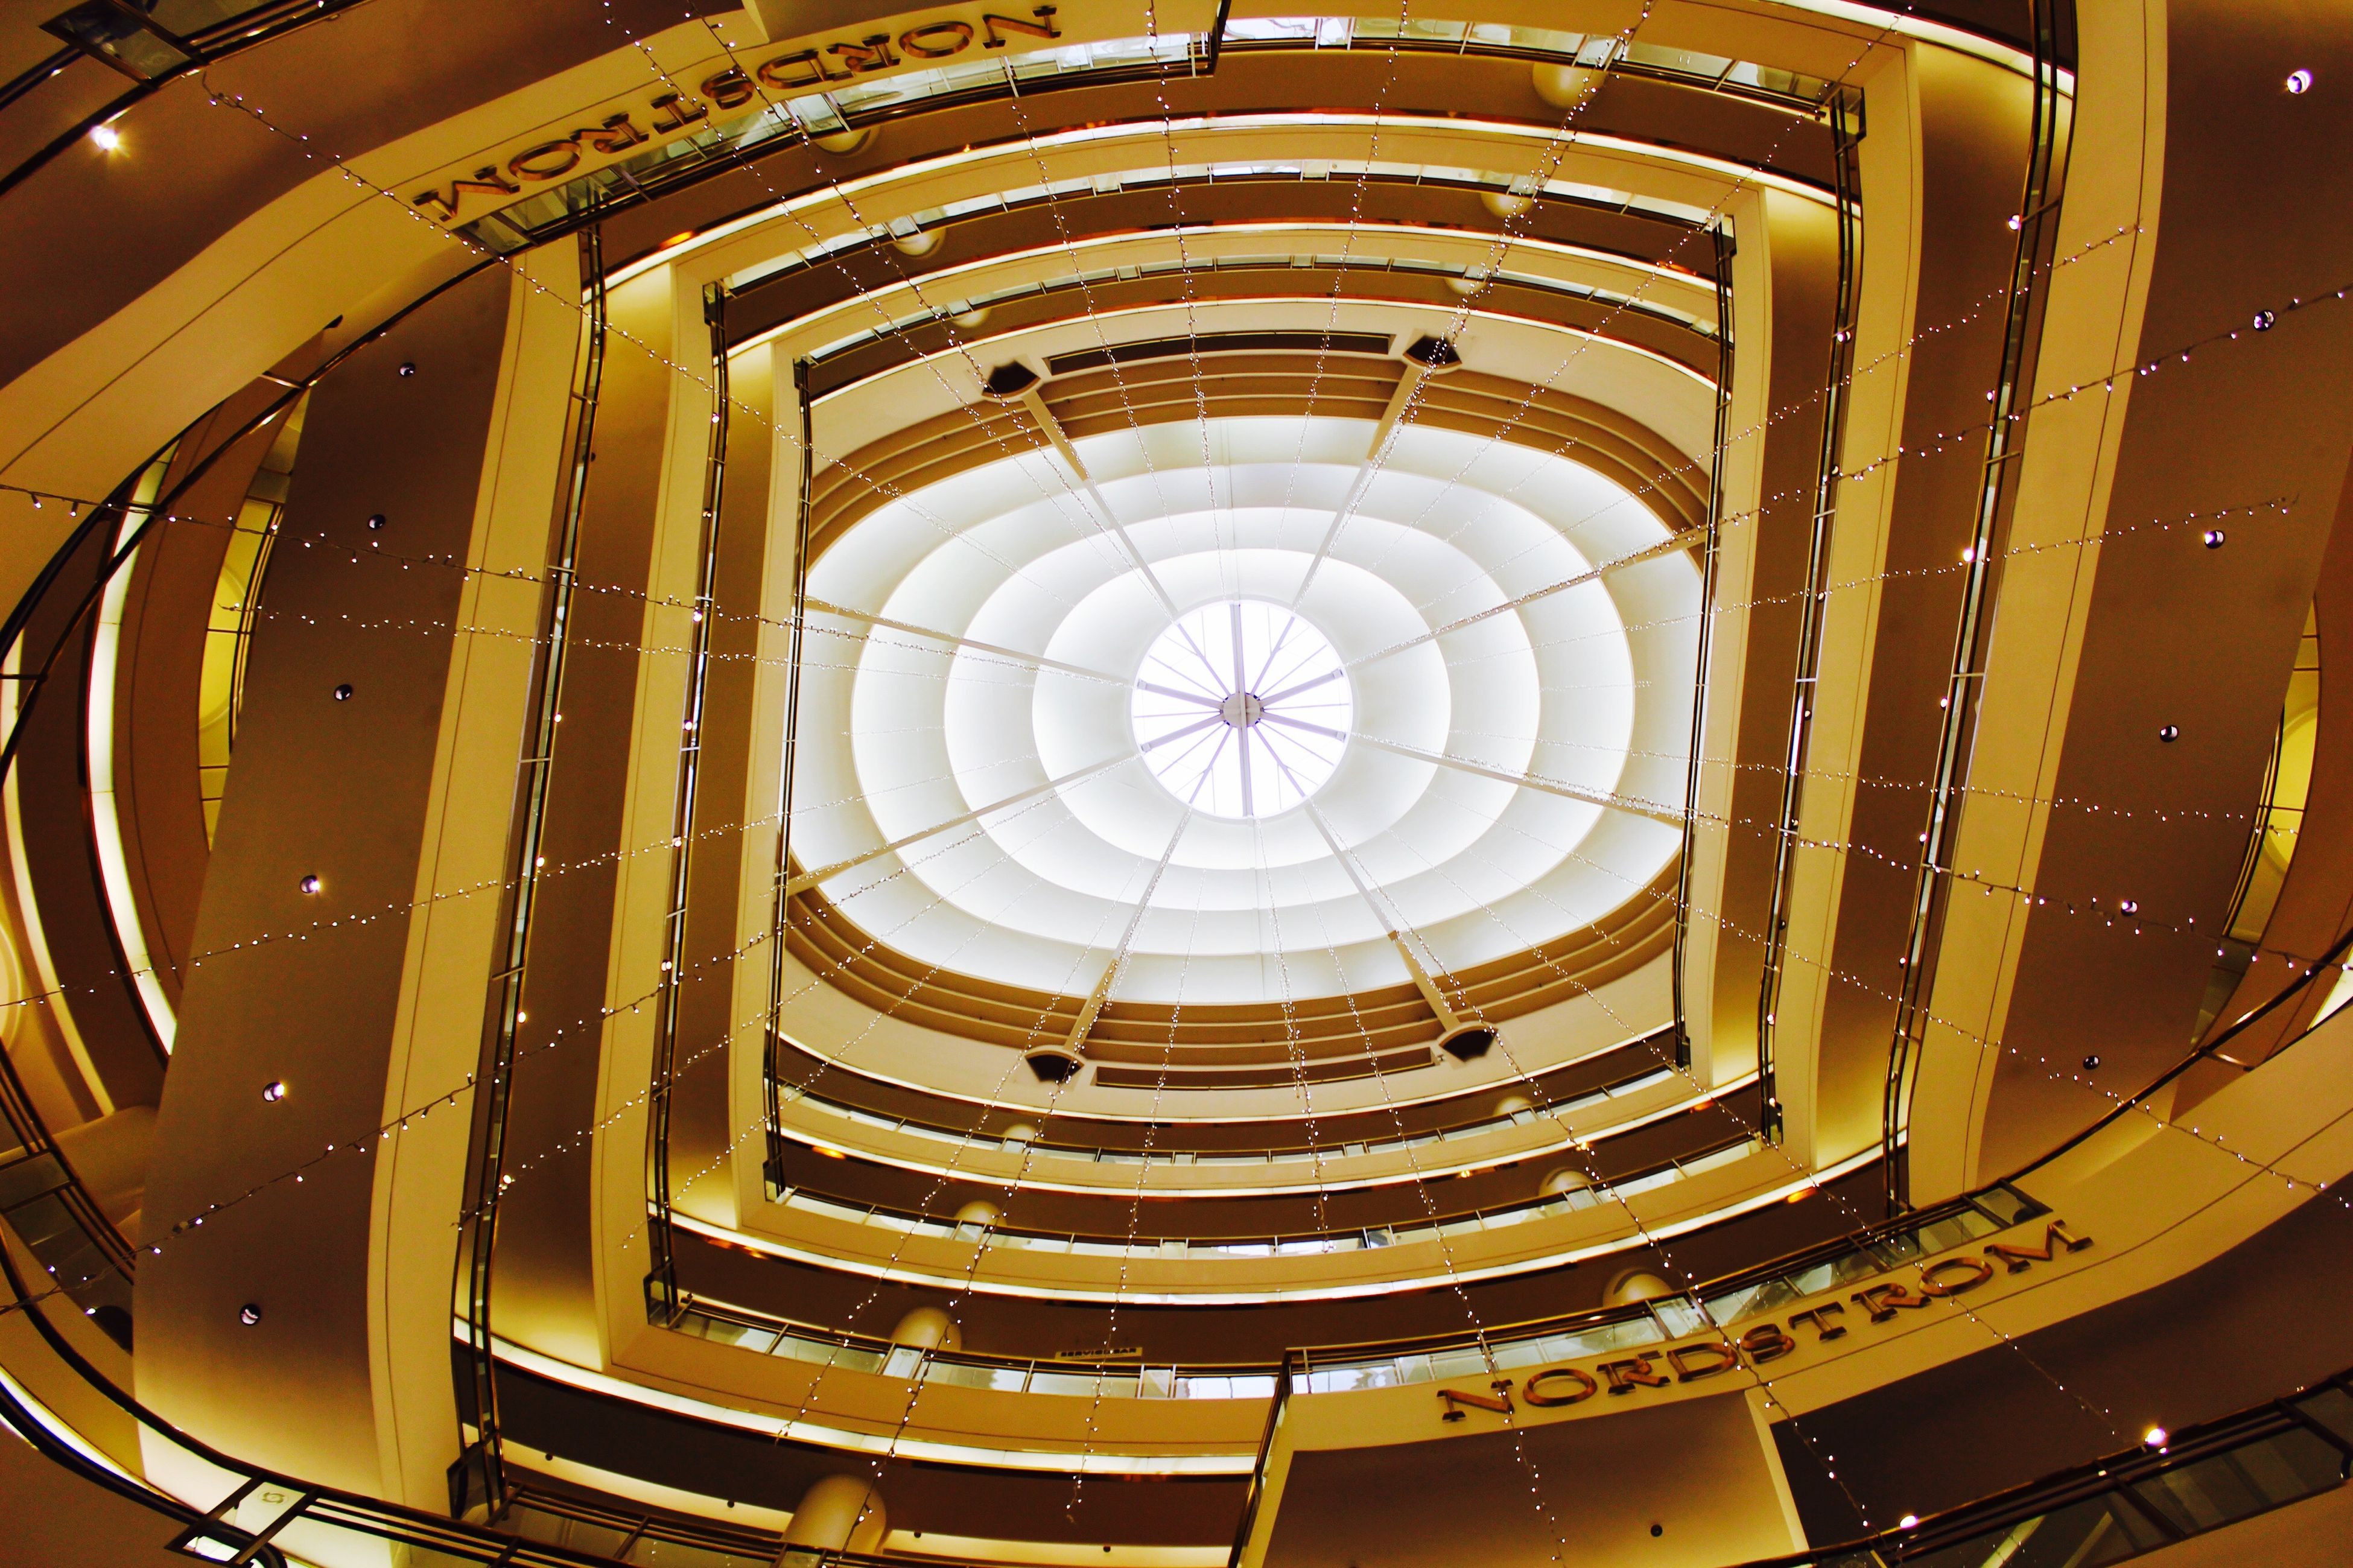 indoors, architecture, built structure, ceiling, low angle view, illuminated, circle, pattern, architectural feature, design, directly below, skylight, modern, geometric shape, no people, glass - material, interior, arch, building, clock